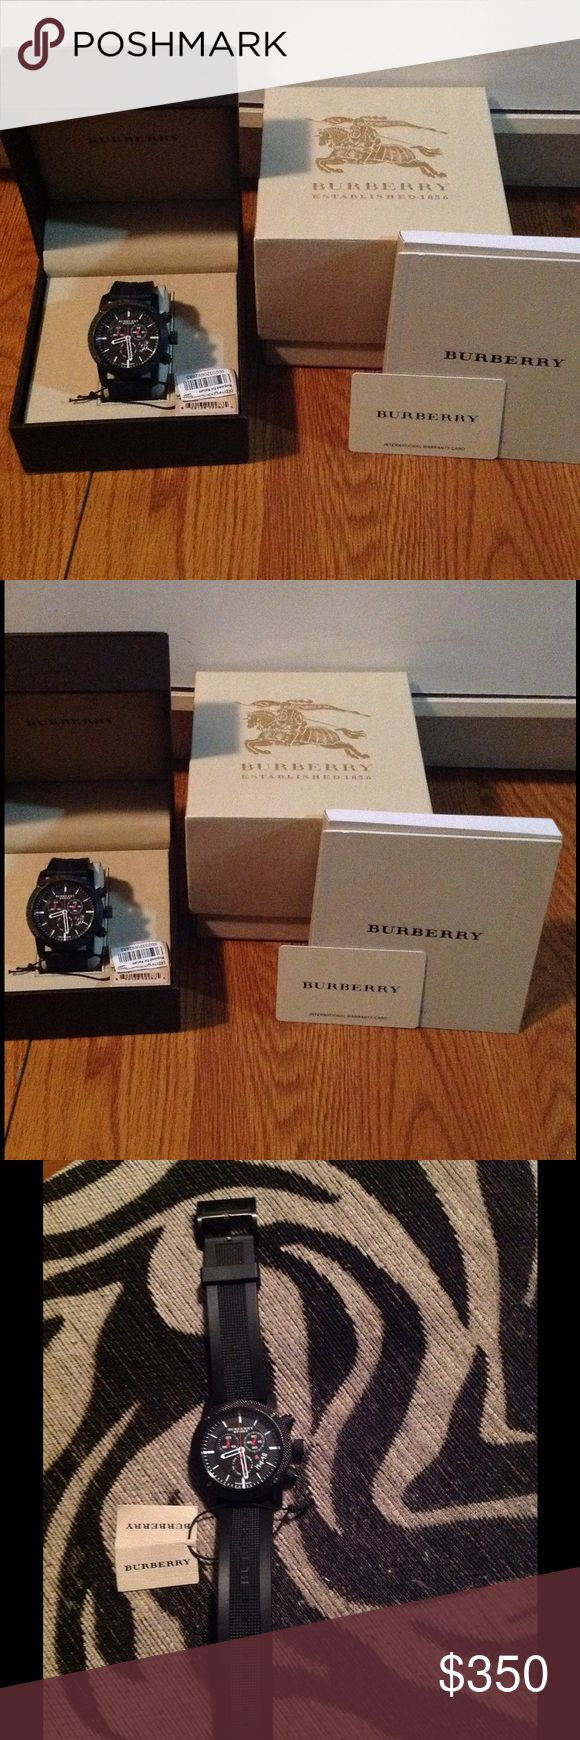 Burberry Men's Watch New in box worn only once. Comes with box, tags, instructional manual and warranty card. Only needs a battery. Chronograph men's watch 45 millimeters, stainless steel with rubber band. Water resistant depth 330 feet. Burberry Accessories Watches